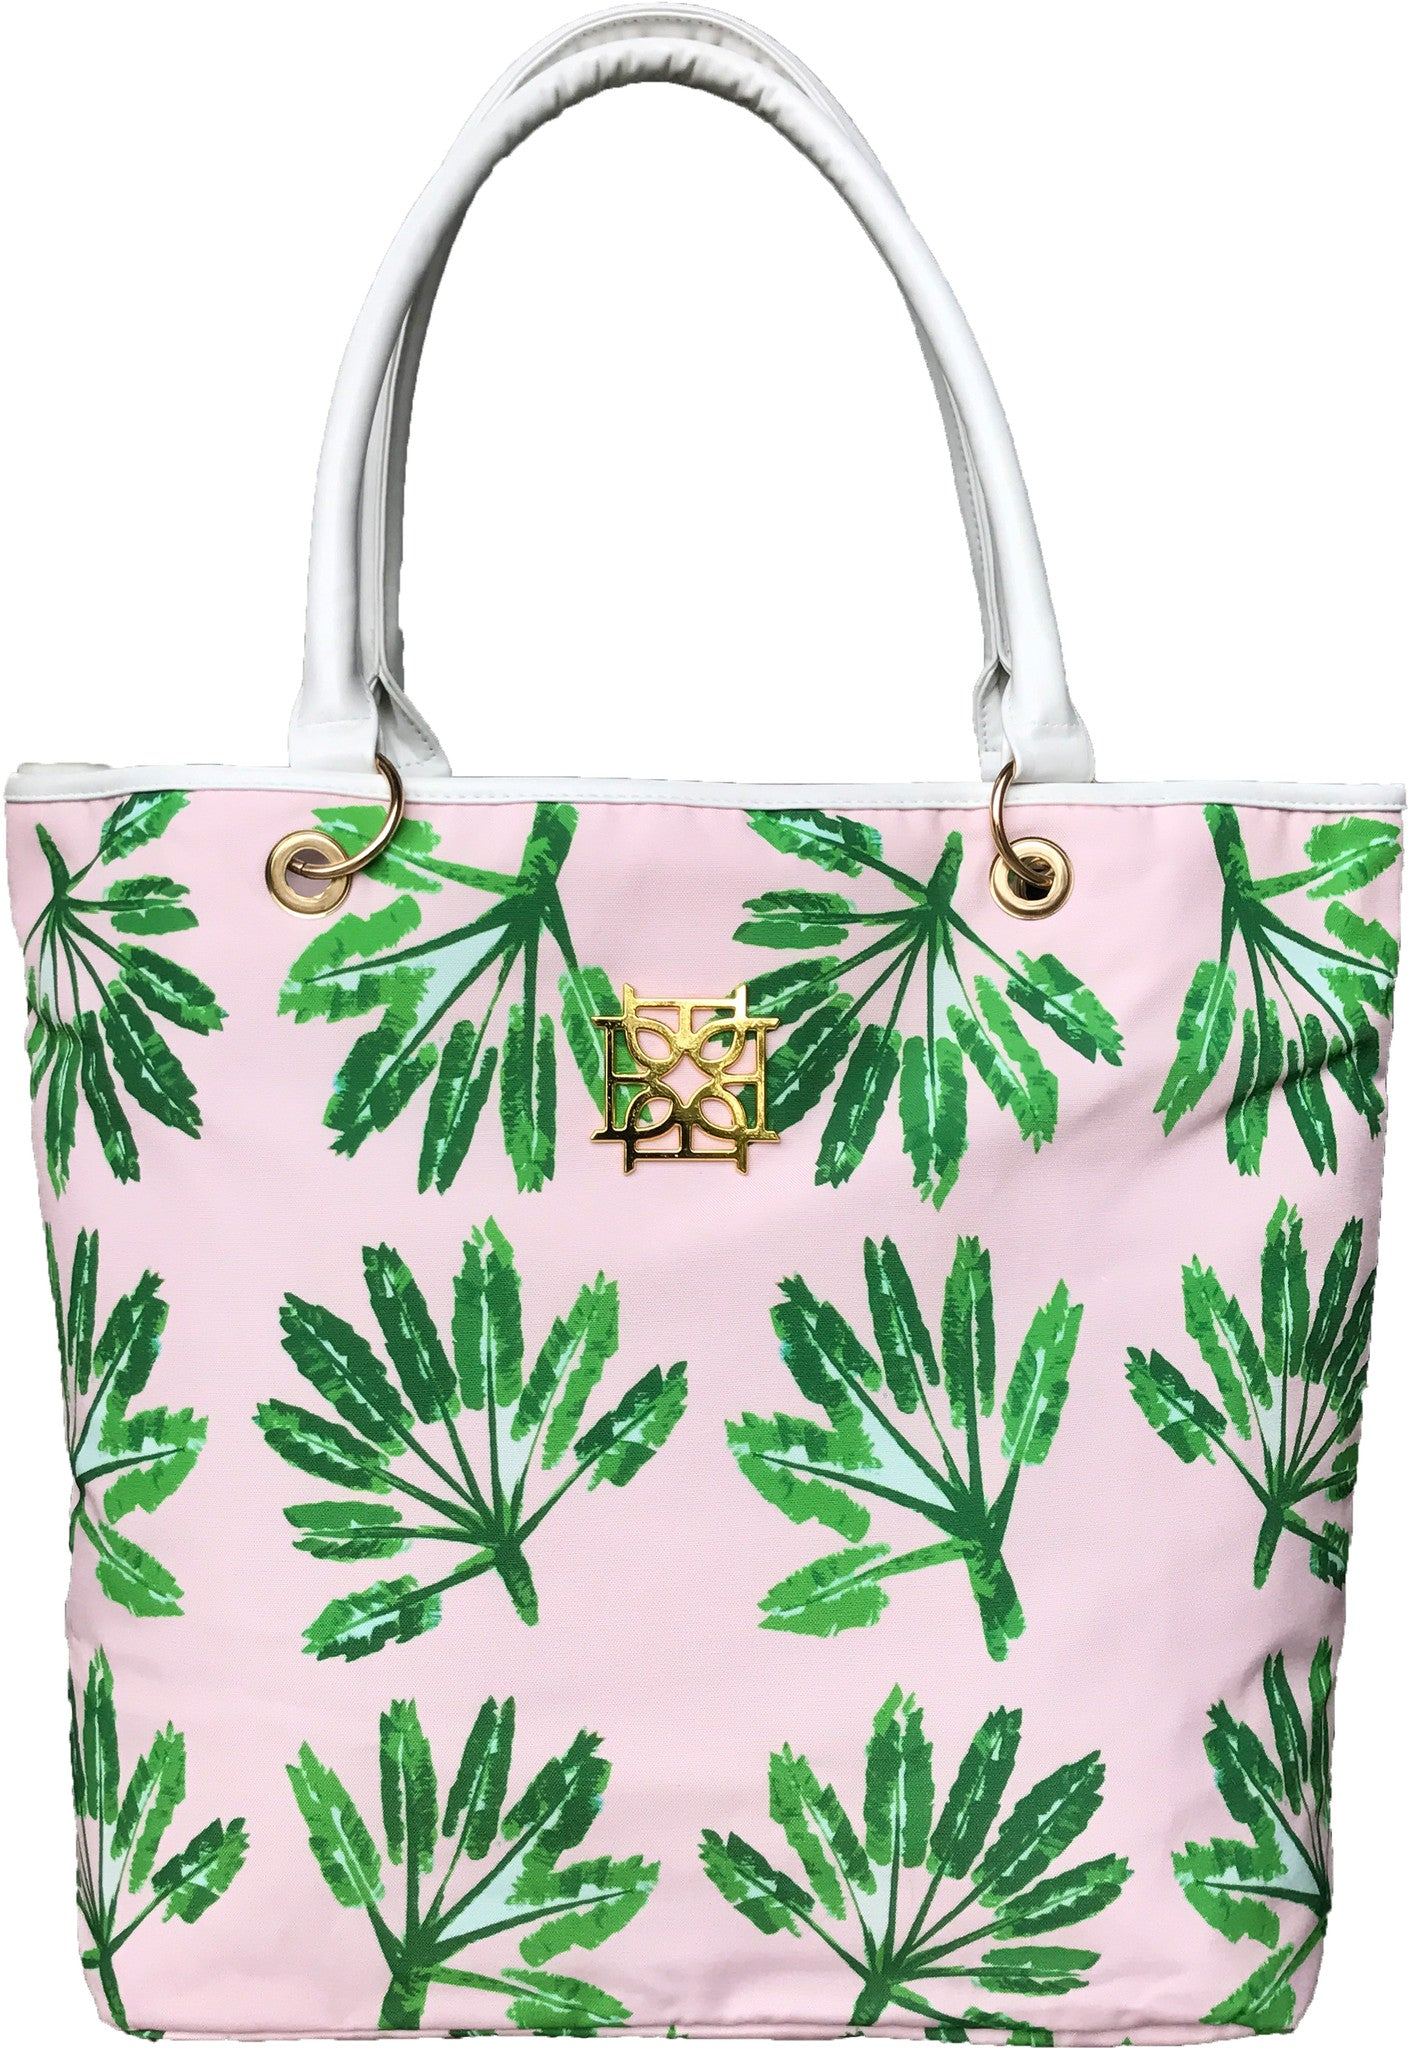 Beach Bag - Little Palms - The Blush Label - Vibrant Resort Wear & Home Decor